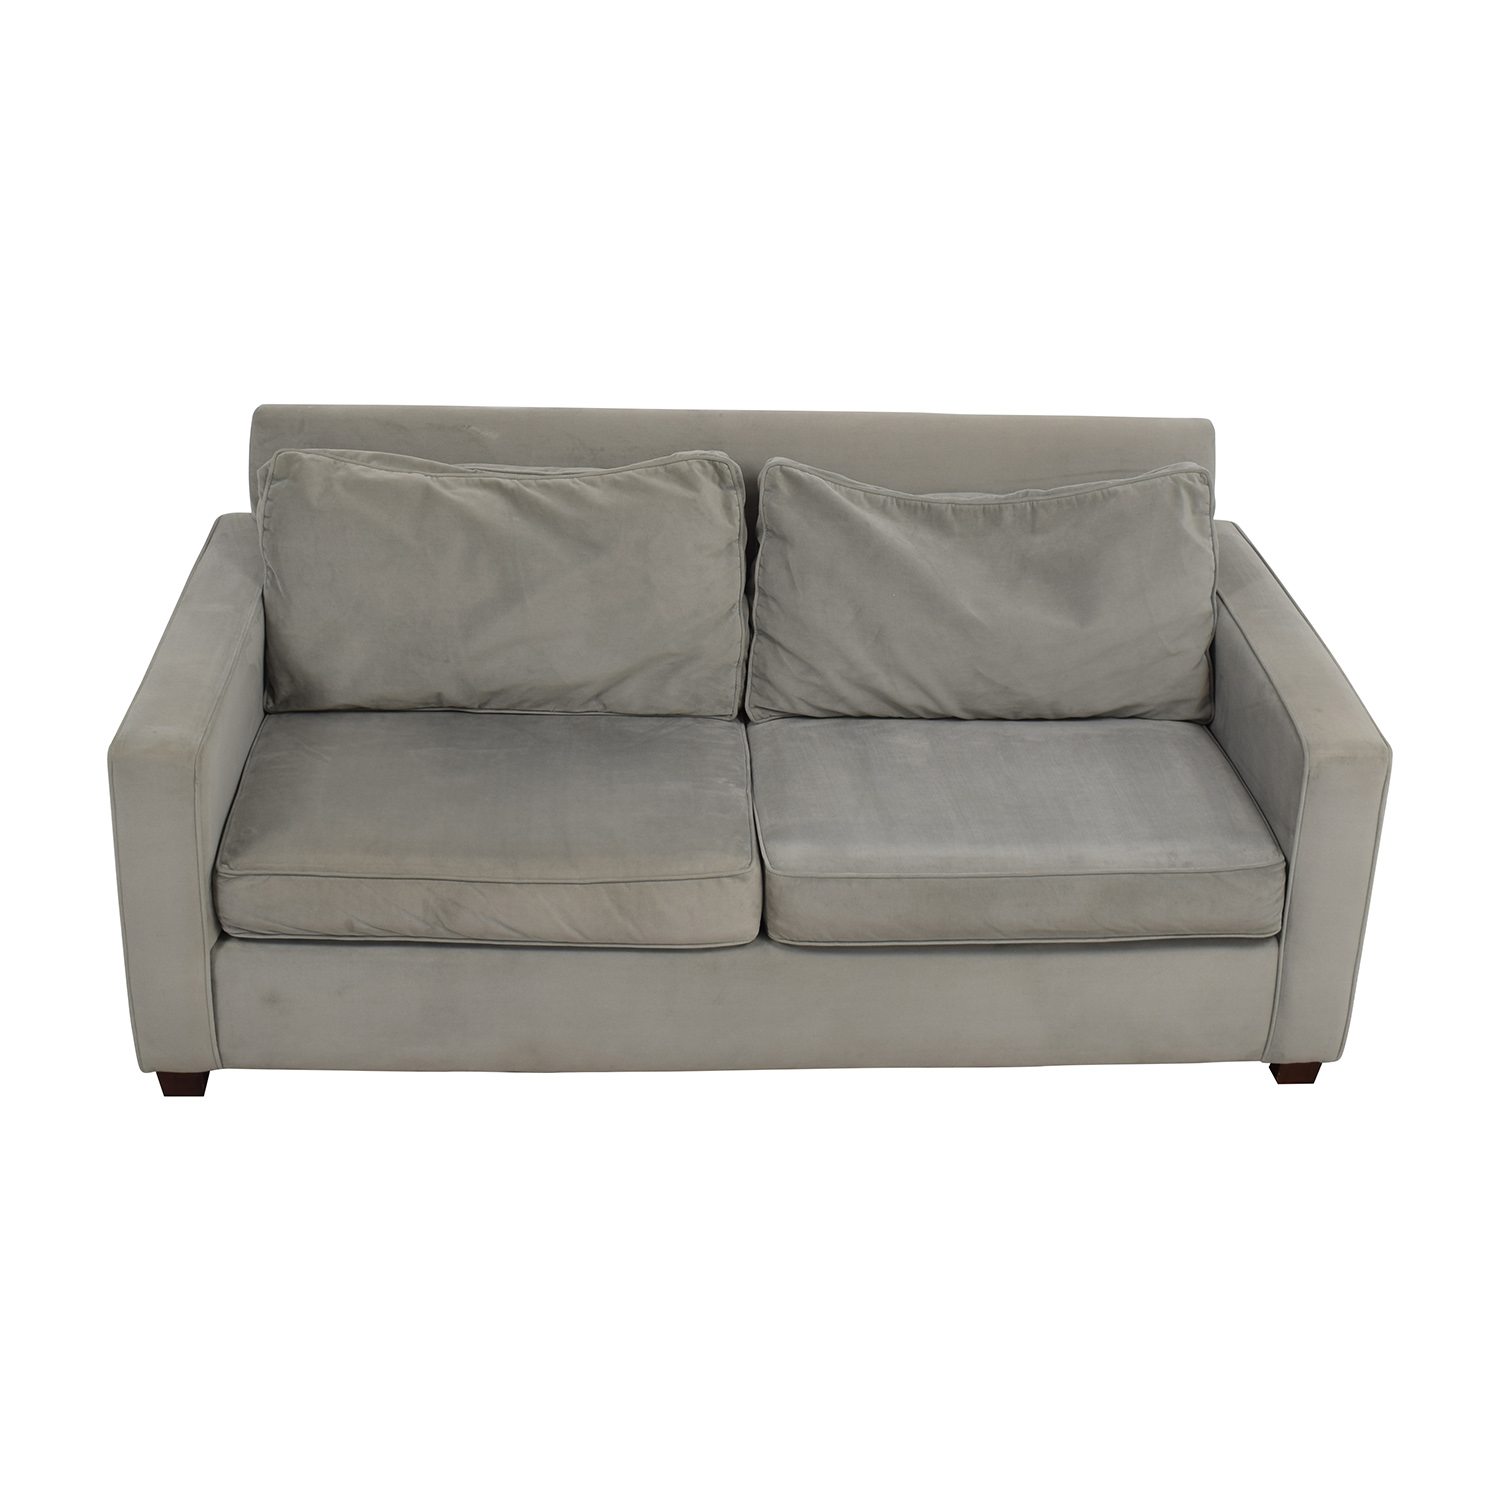 West Elm West Elm Henry Two-Seat Sofa discount